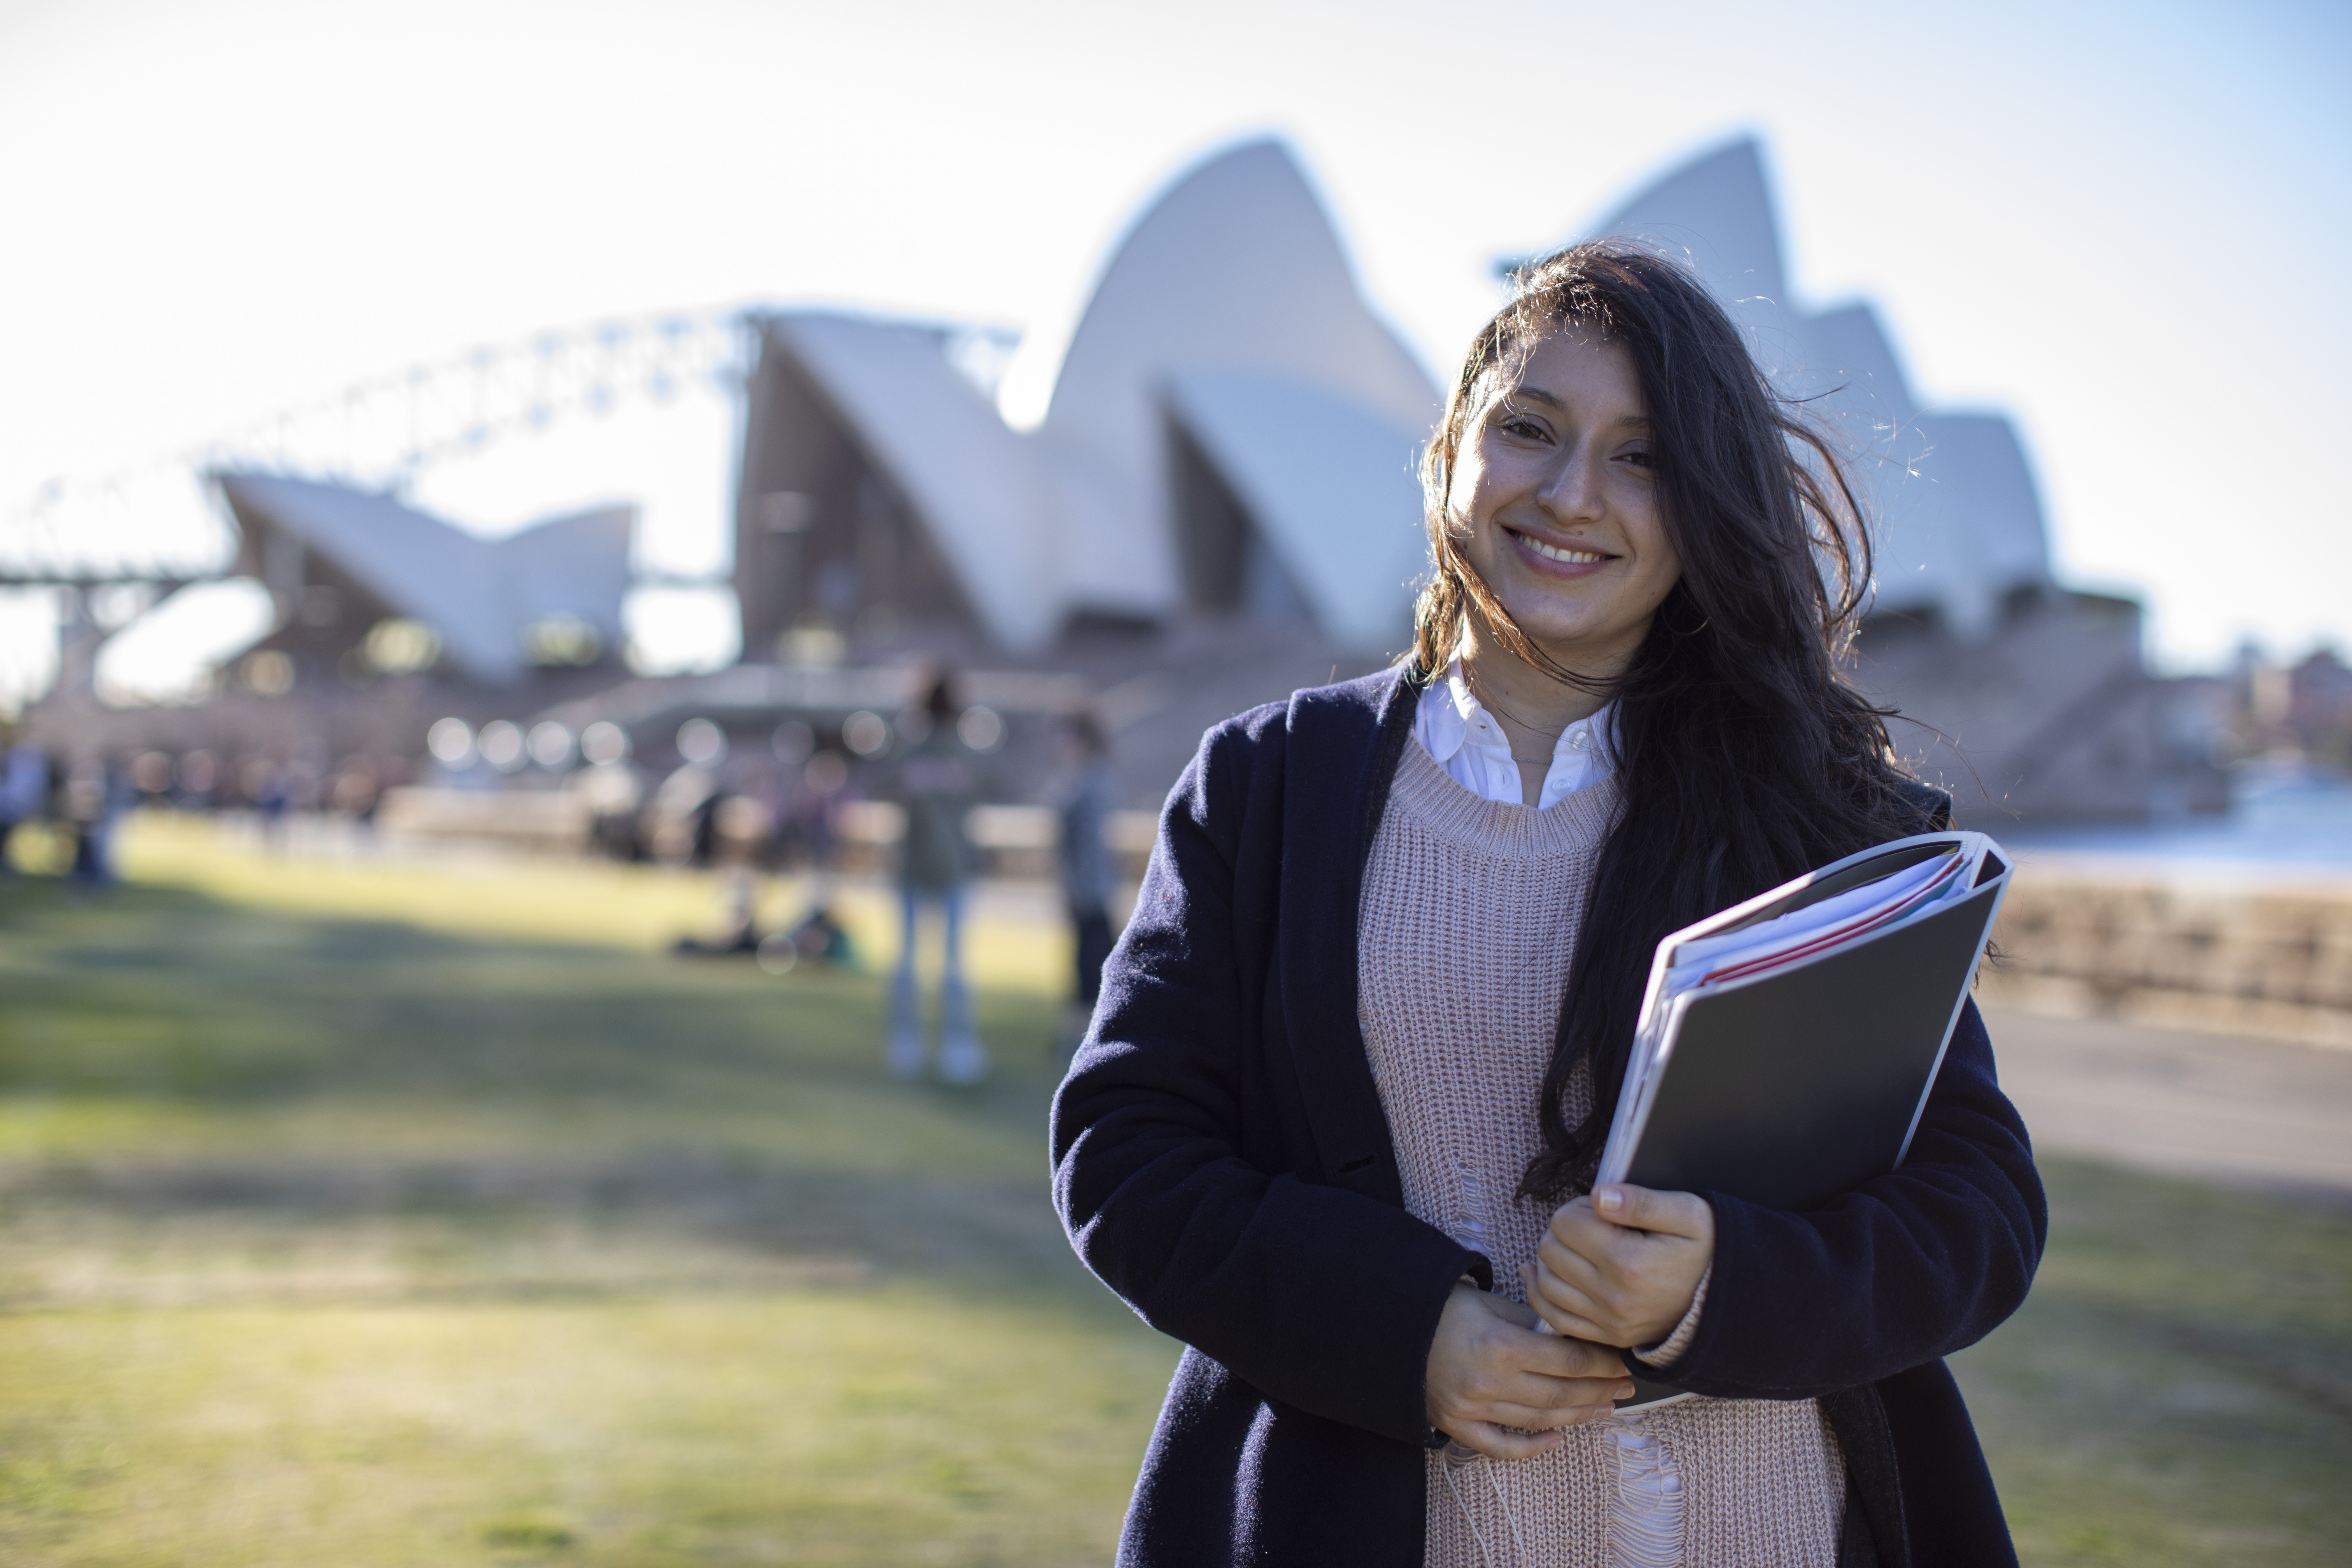 Studying in Australia is safe - Don't Panic